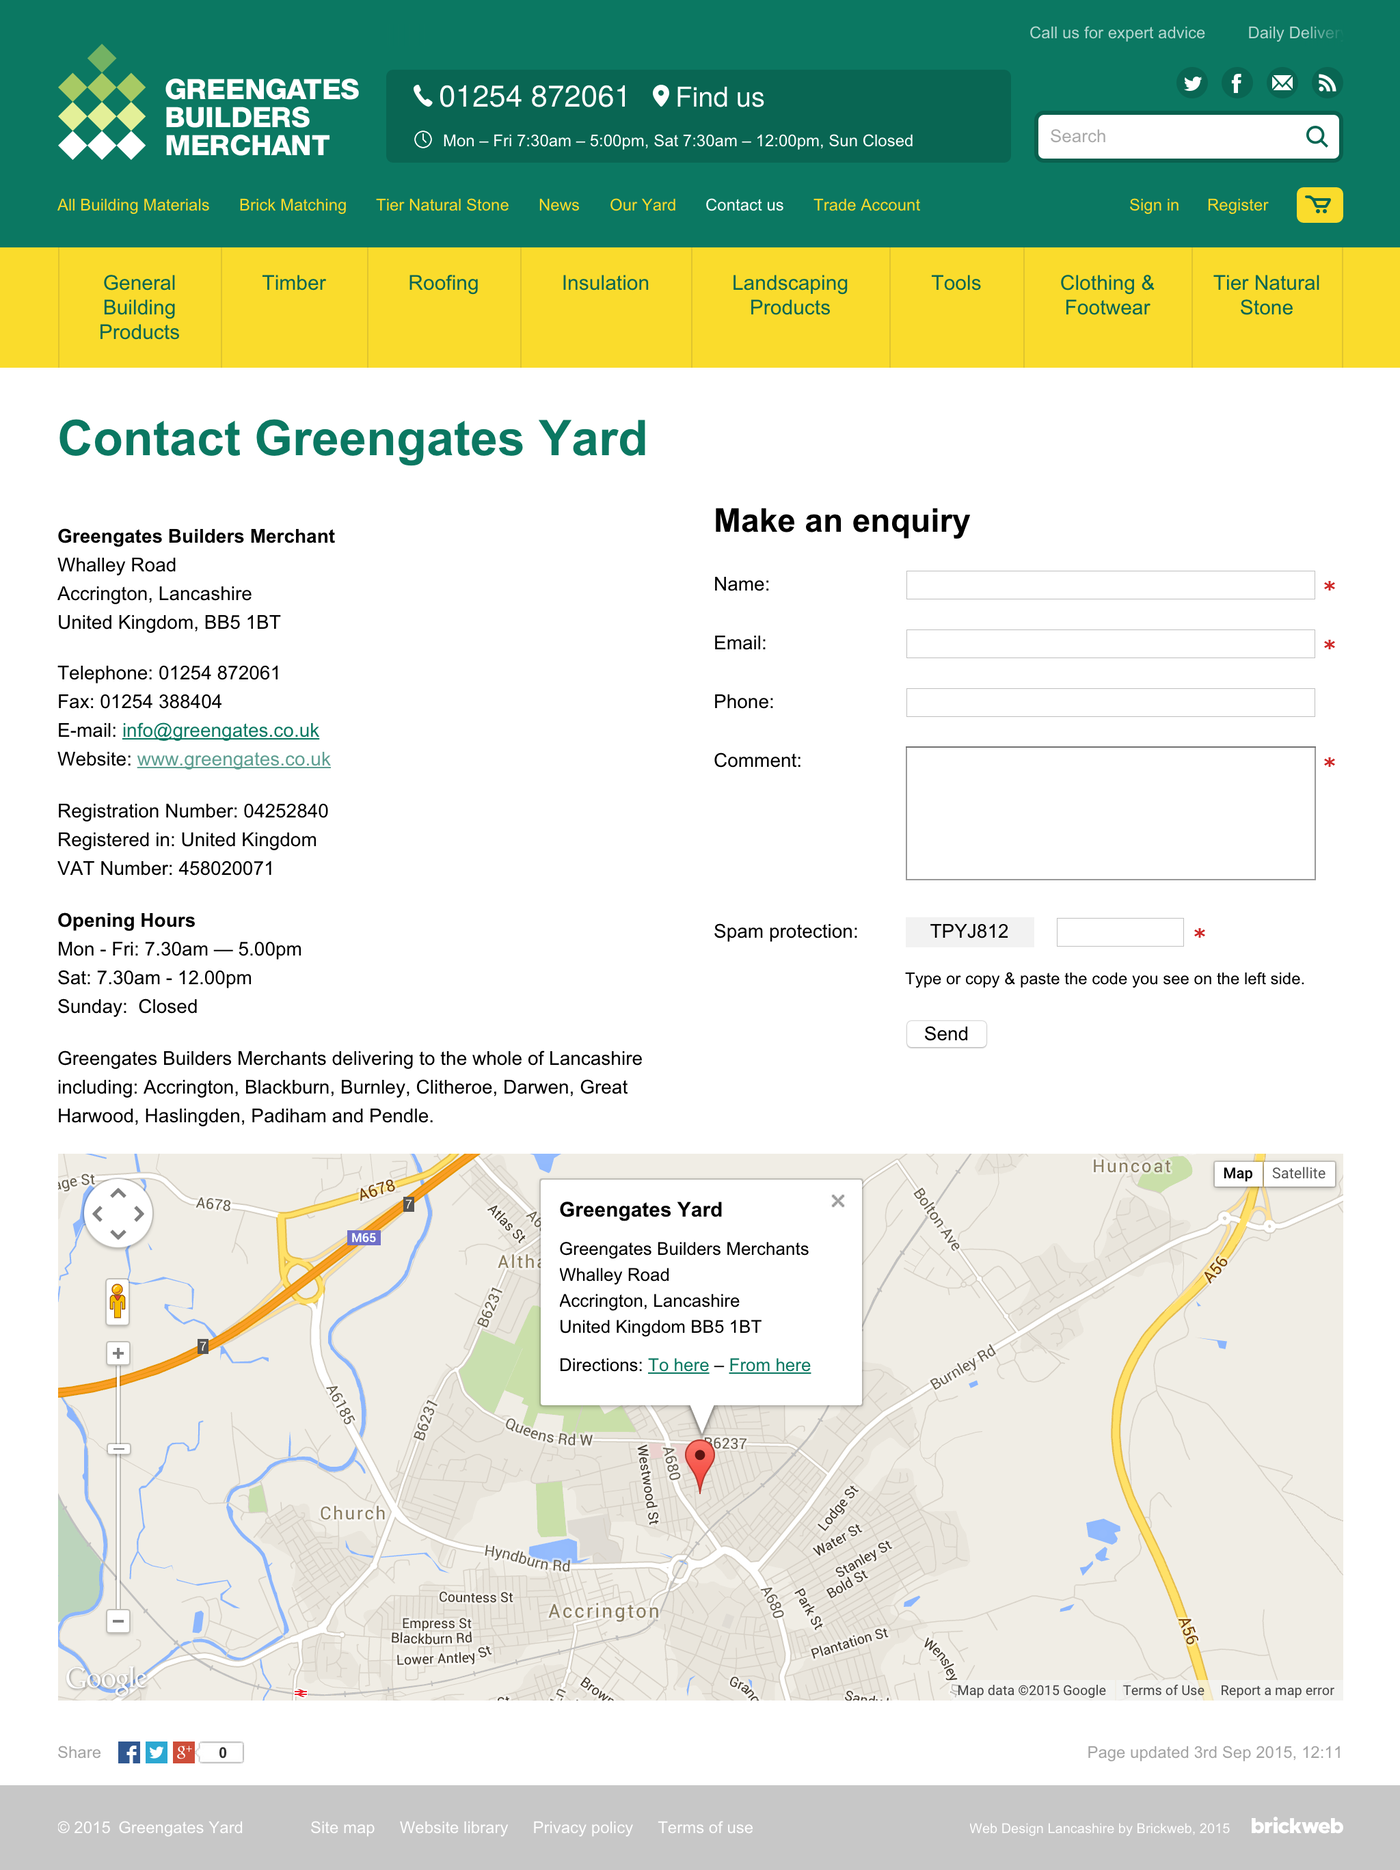 Greengates Builders Merchants 2015 Contact us